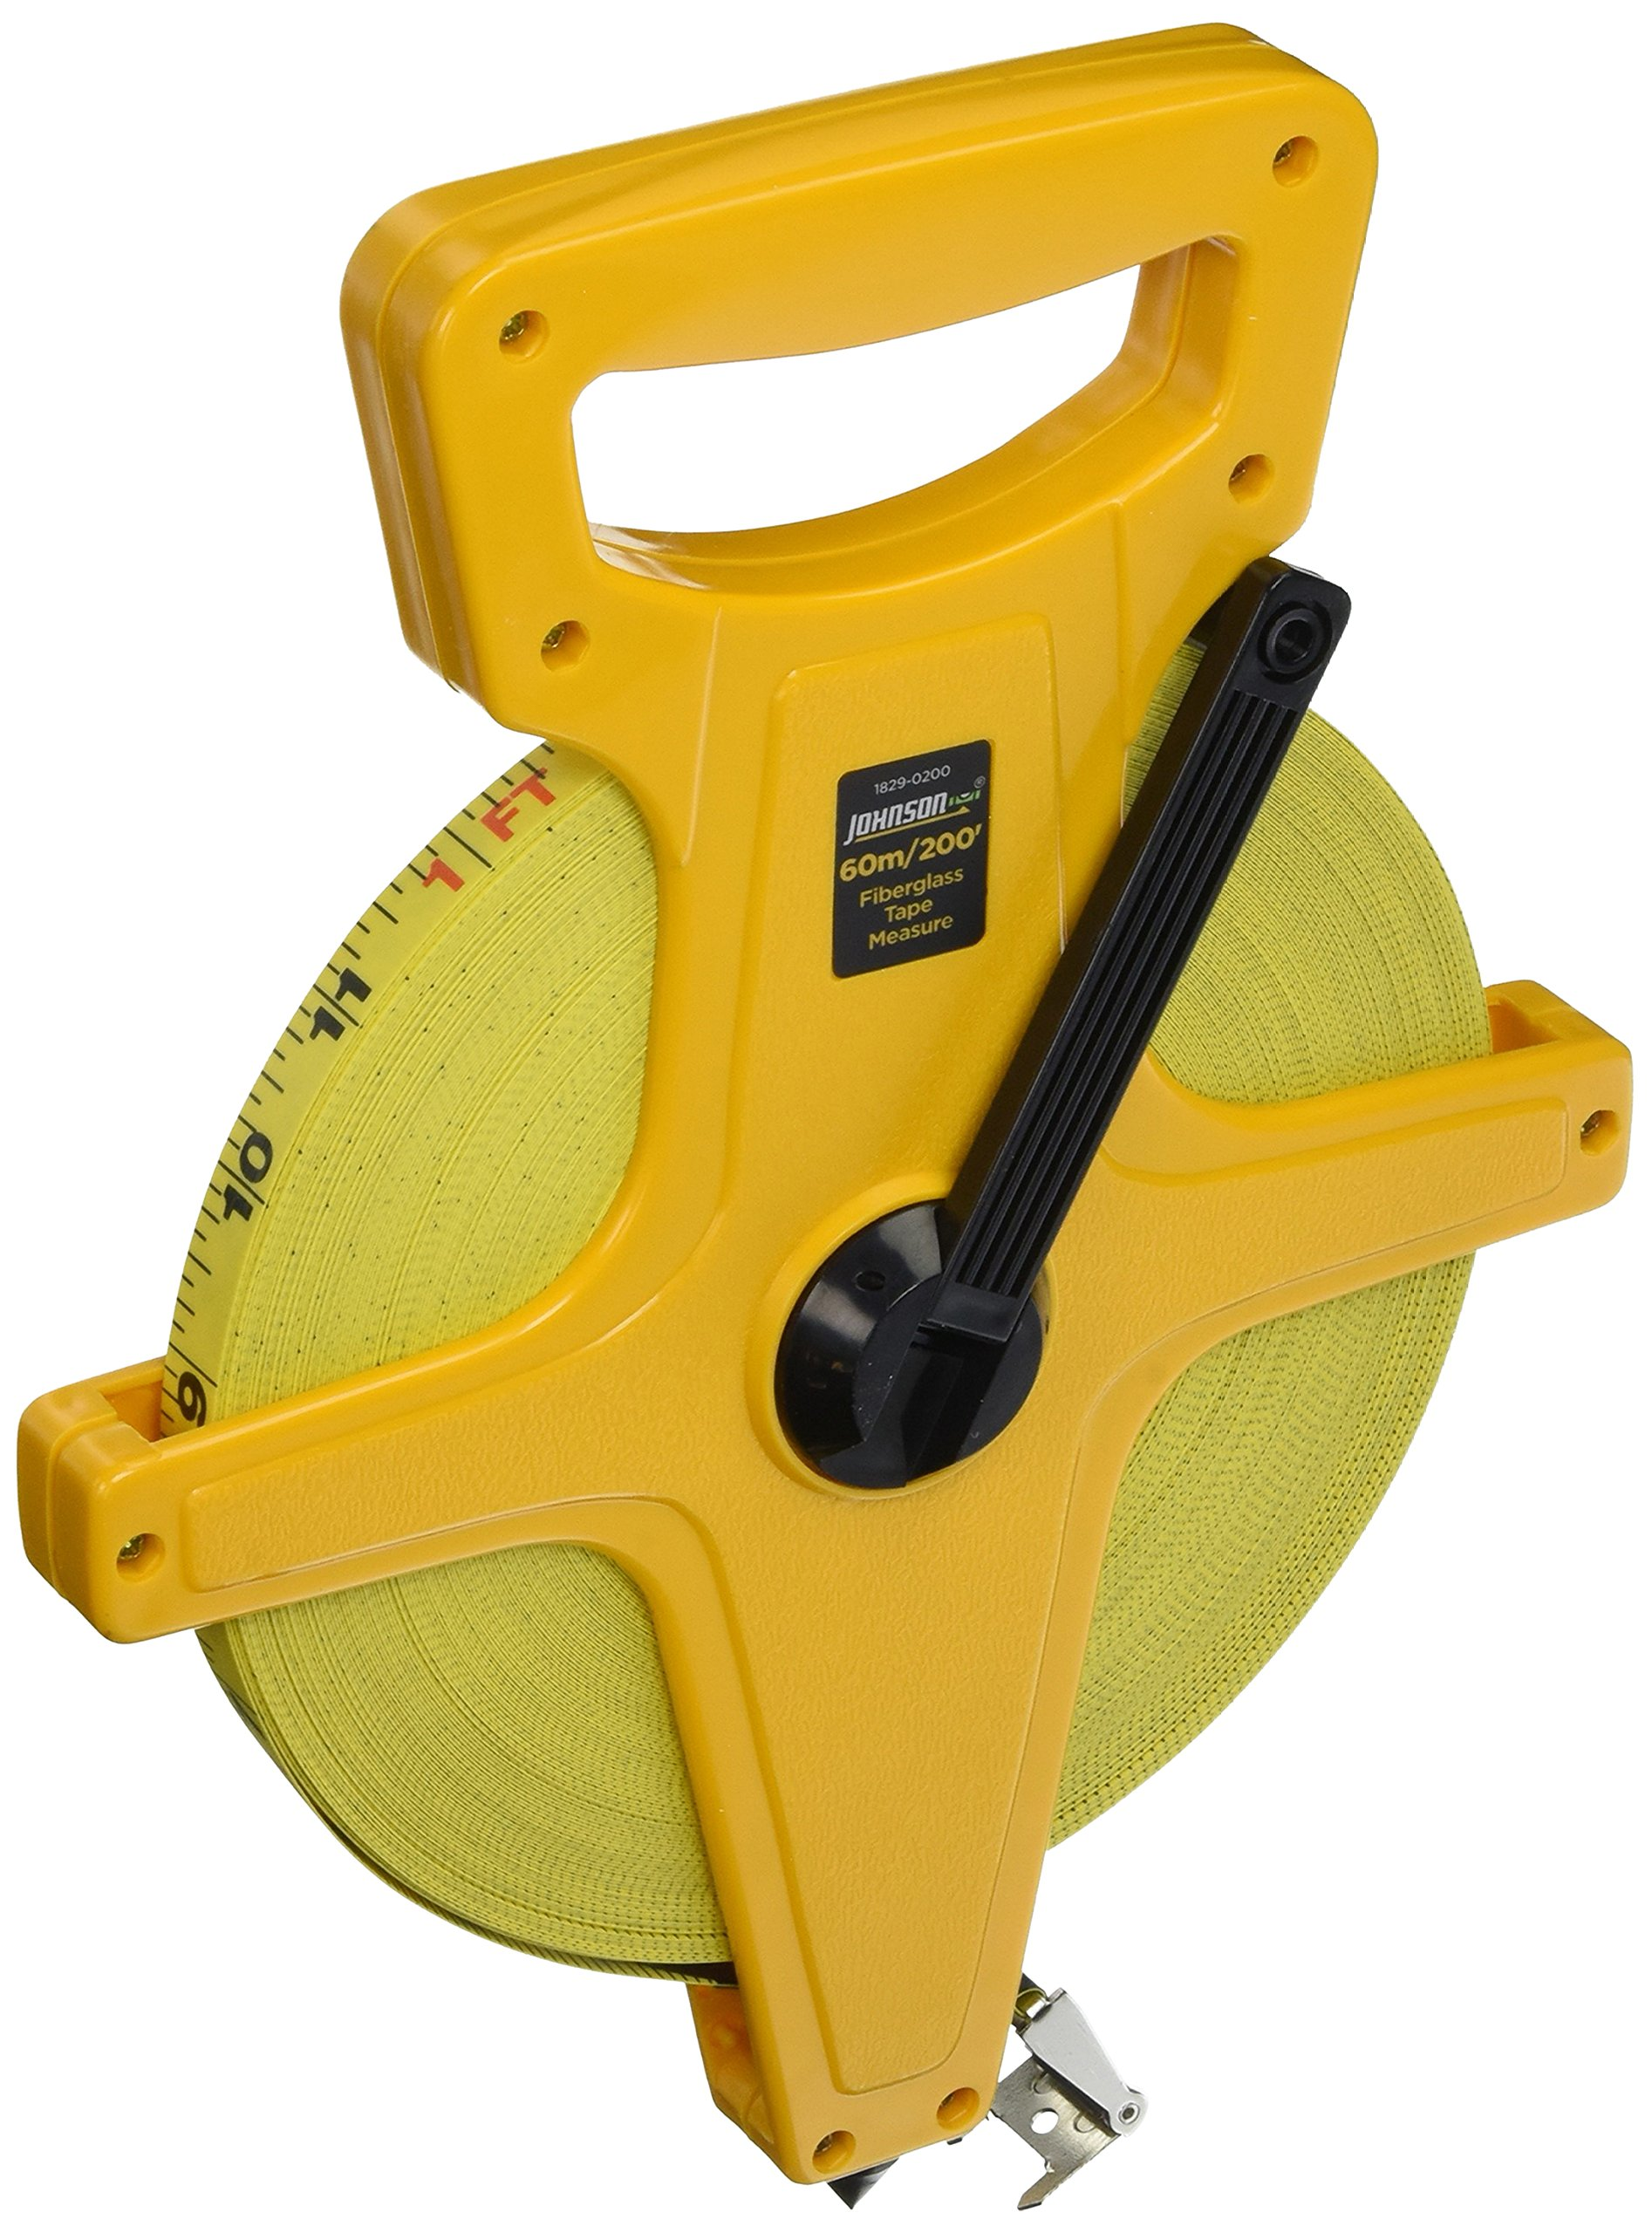 Johnson Level & Tool 1829-0200 Long Tape Measure Metric, 200-Feet by Johnson Level & Tool